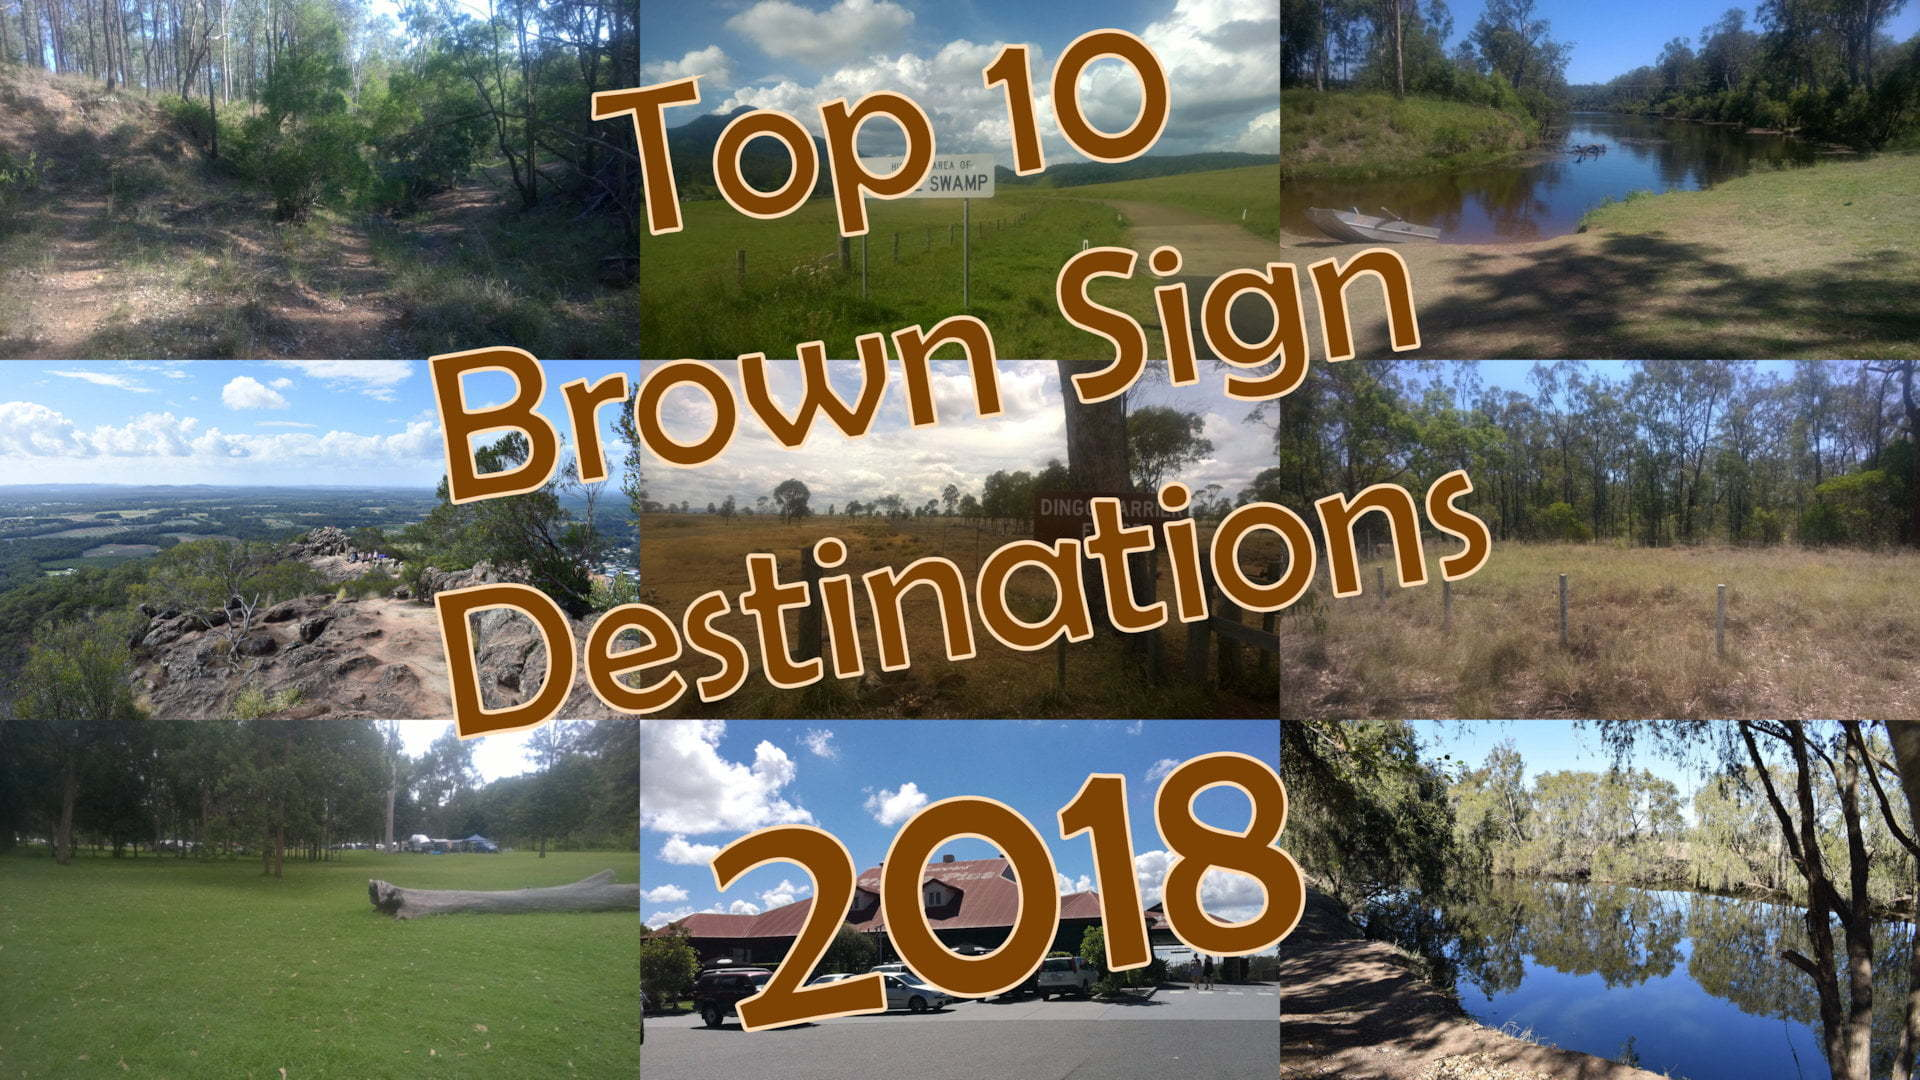 Top 10 Brown Sign Destinations 2018